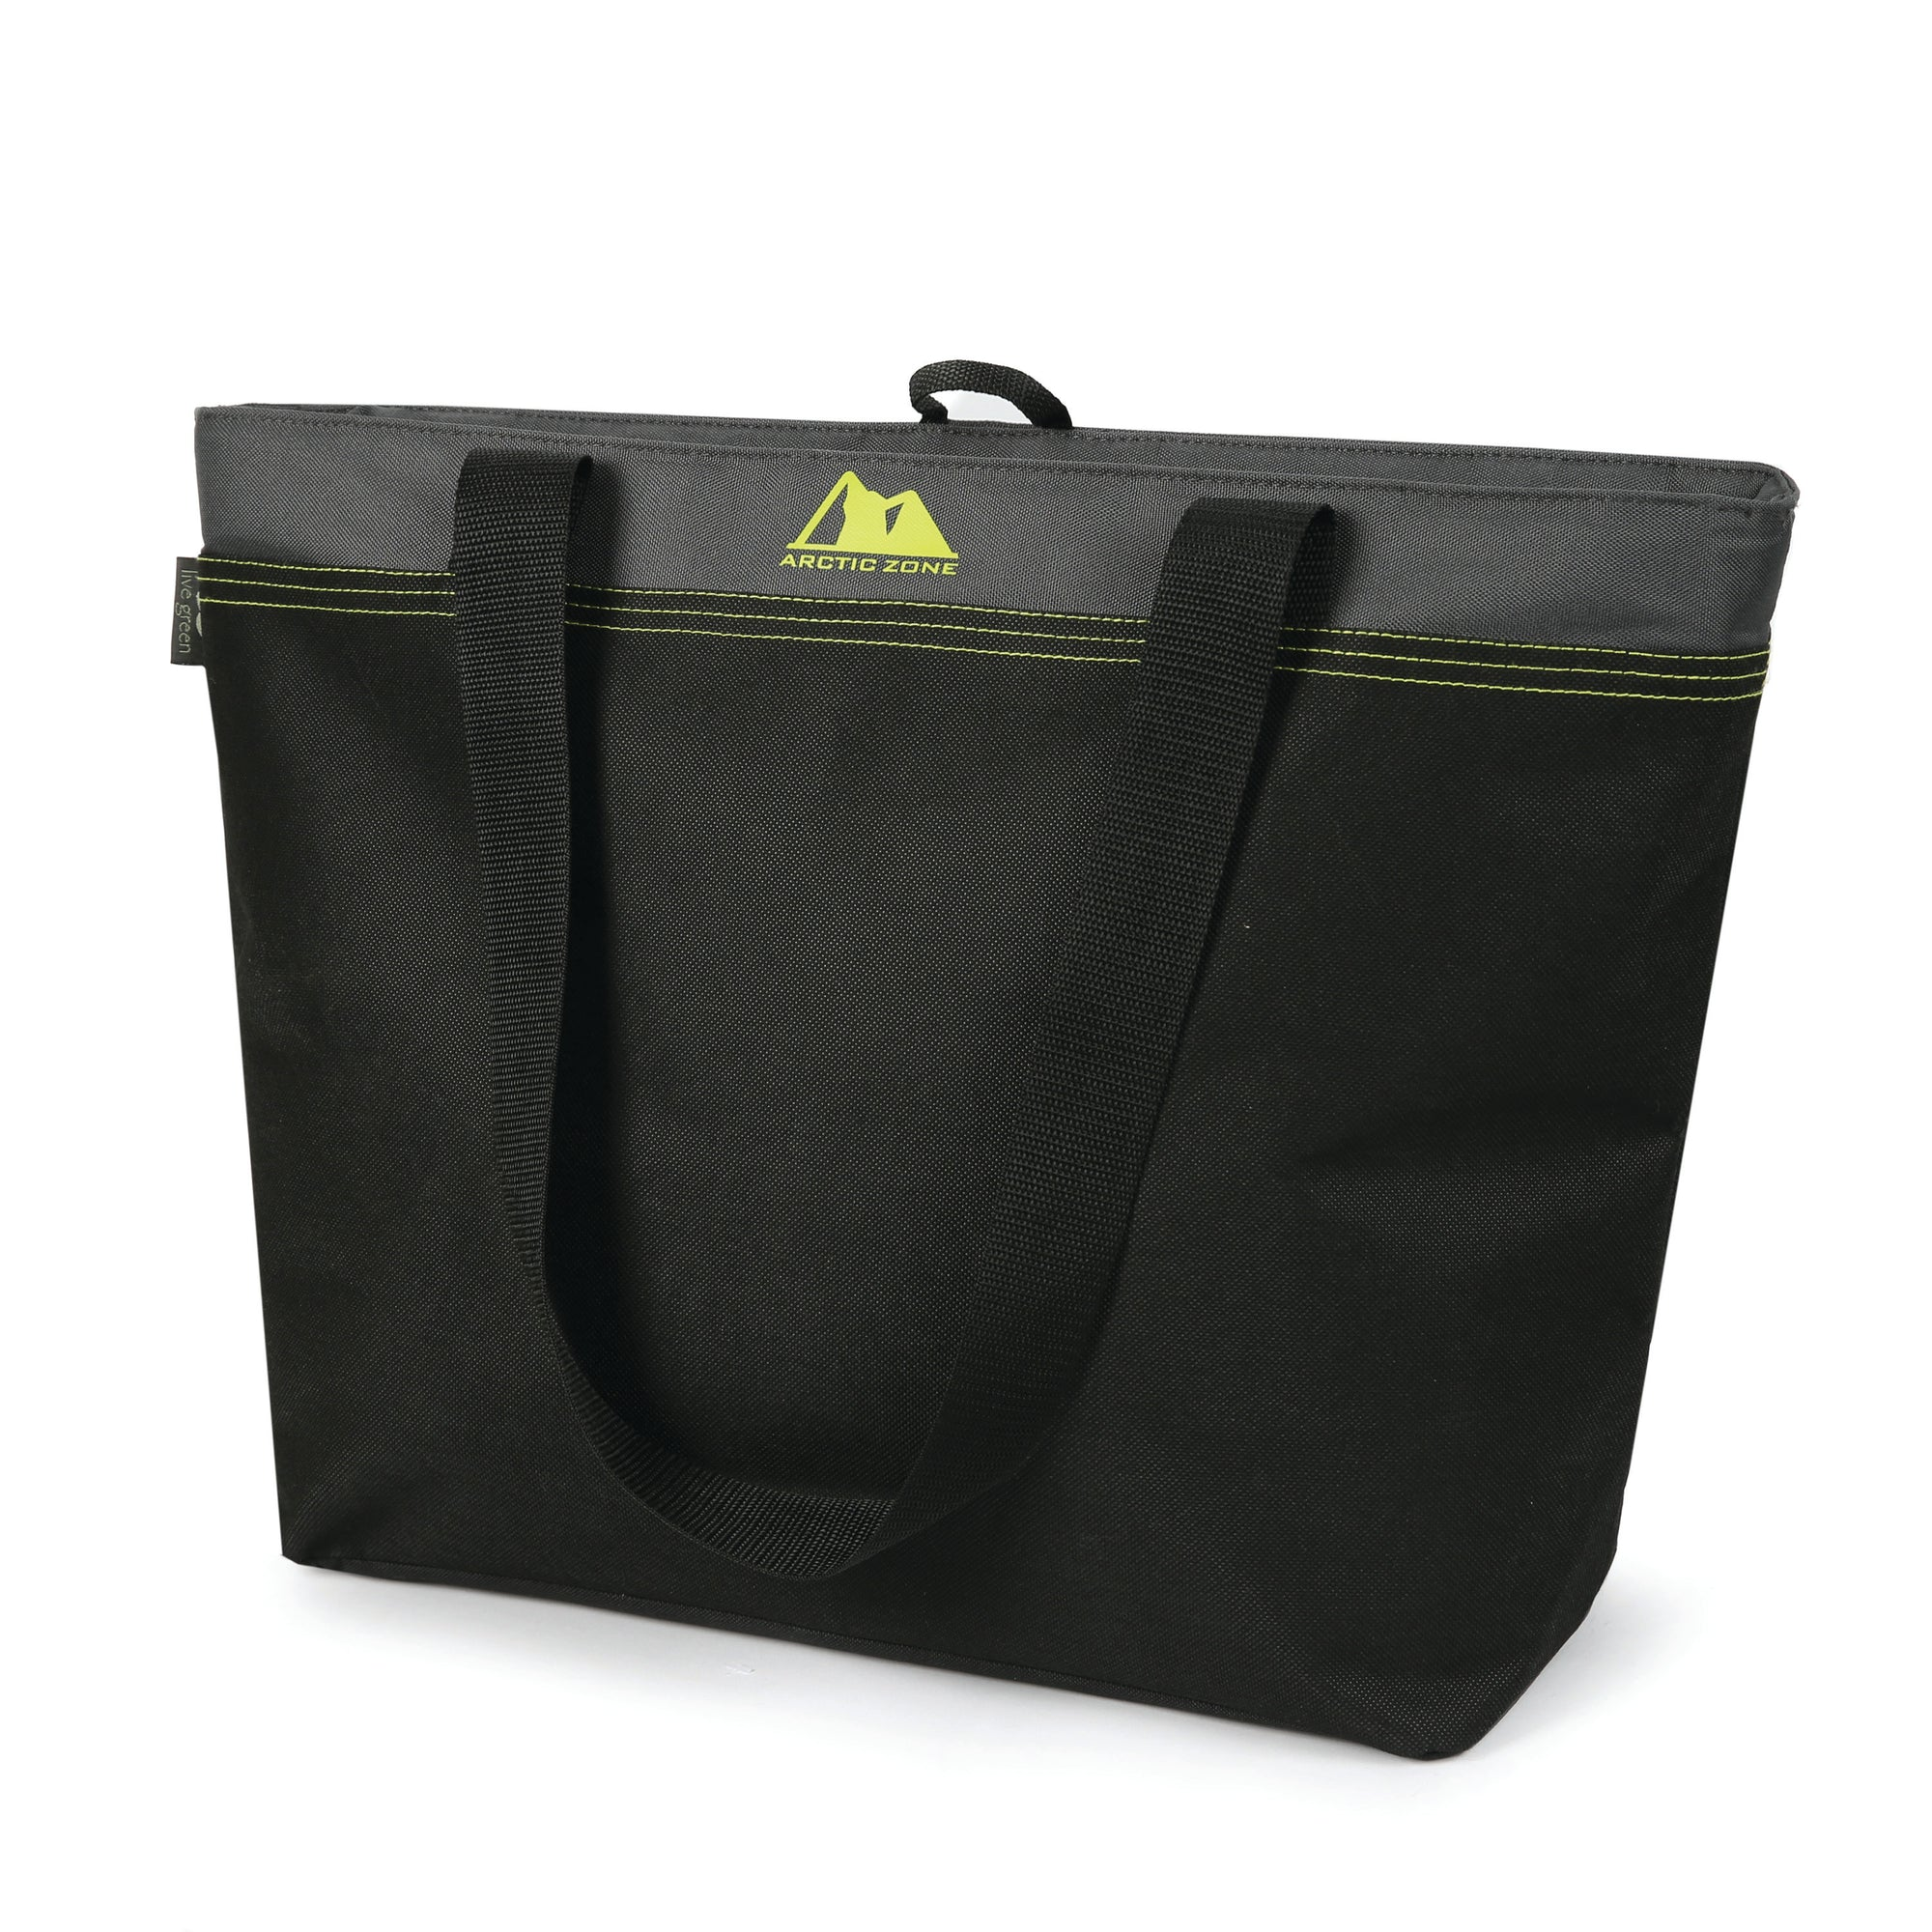 45 Can Eco Blend™ Freezer Tote - Green - Front, closed